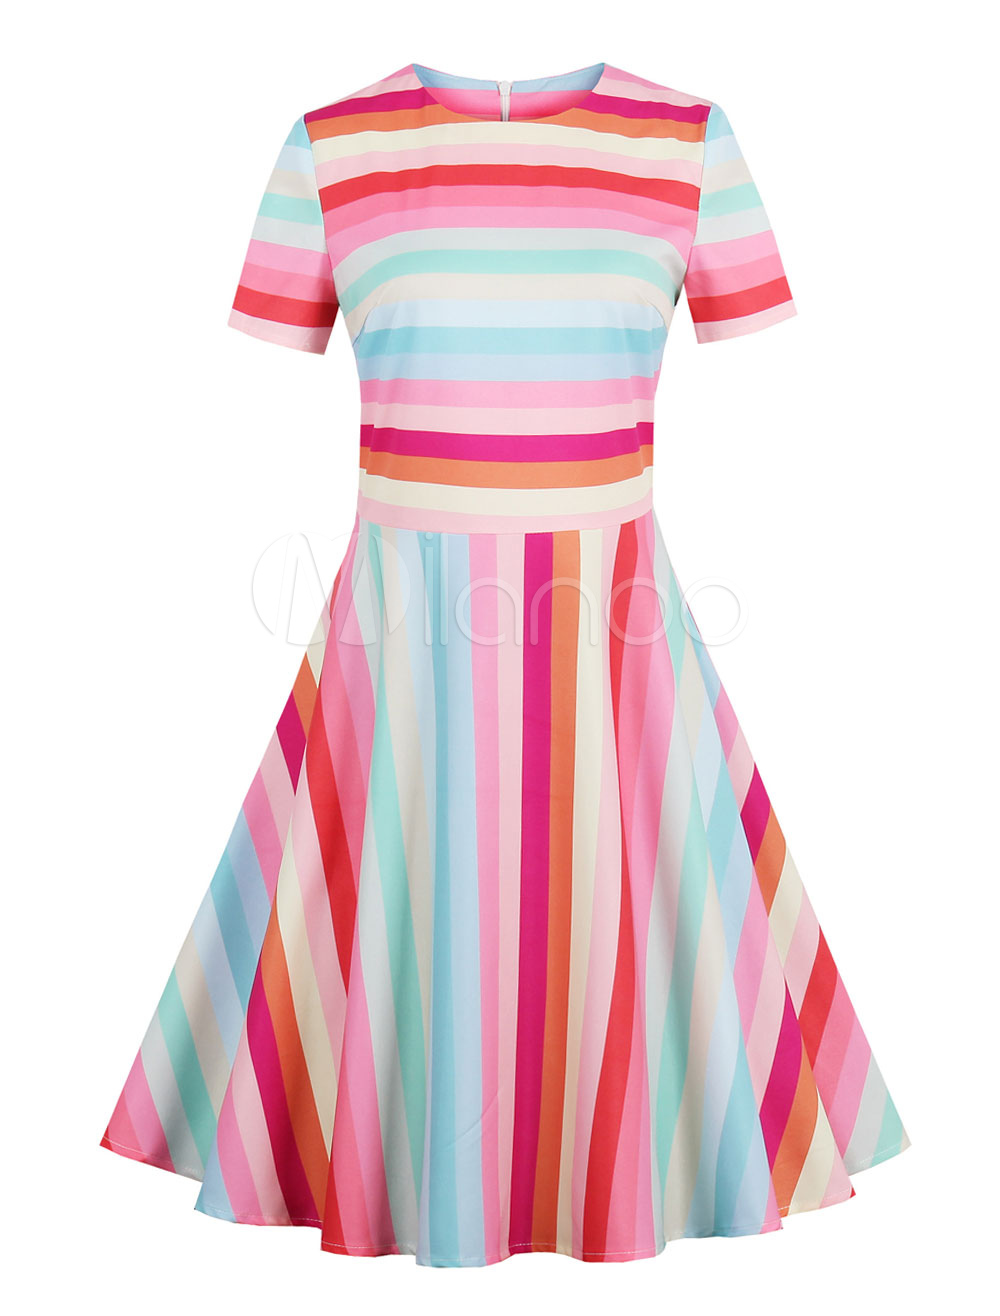 Women Vintage Dress 1950s Striped Short Sleeve Pleated Women Swing Dress